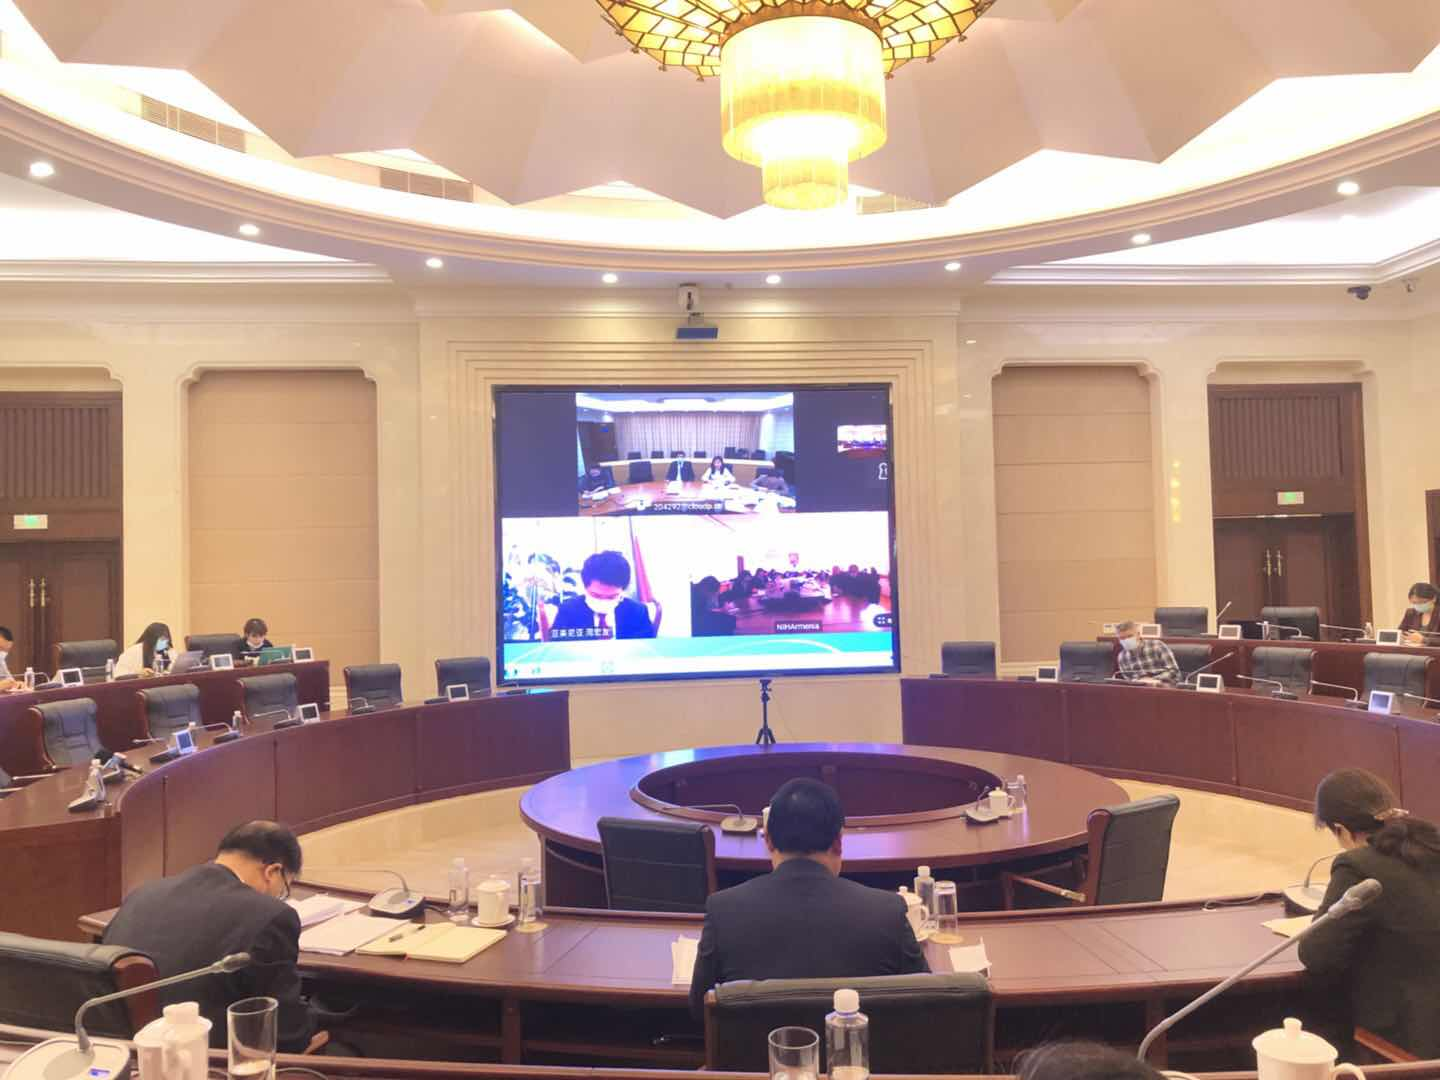 Chongqing epidemic prevention experts share COVID-19 prevention and control experience with their counterparts in Ukraine through video conference.